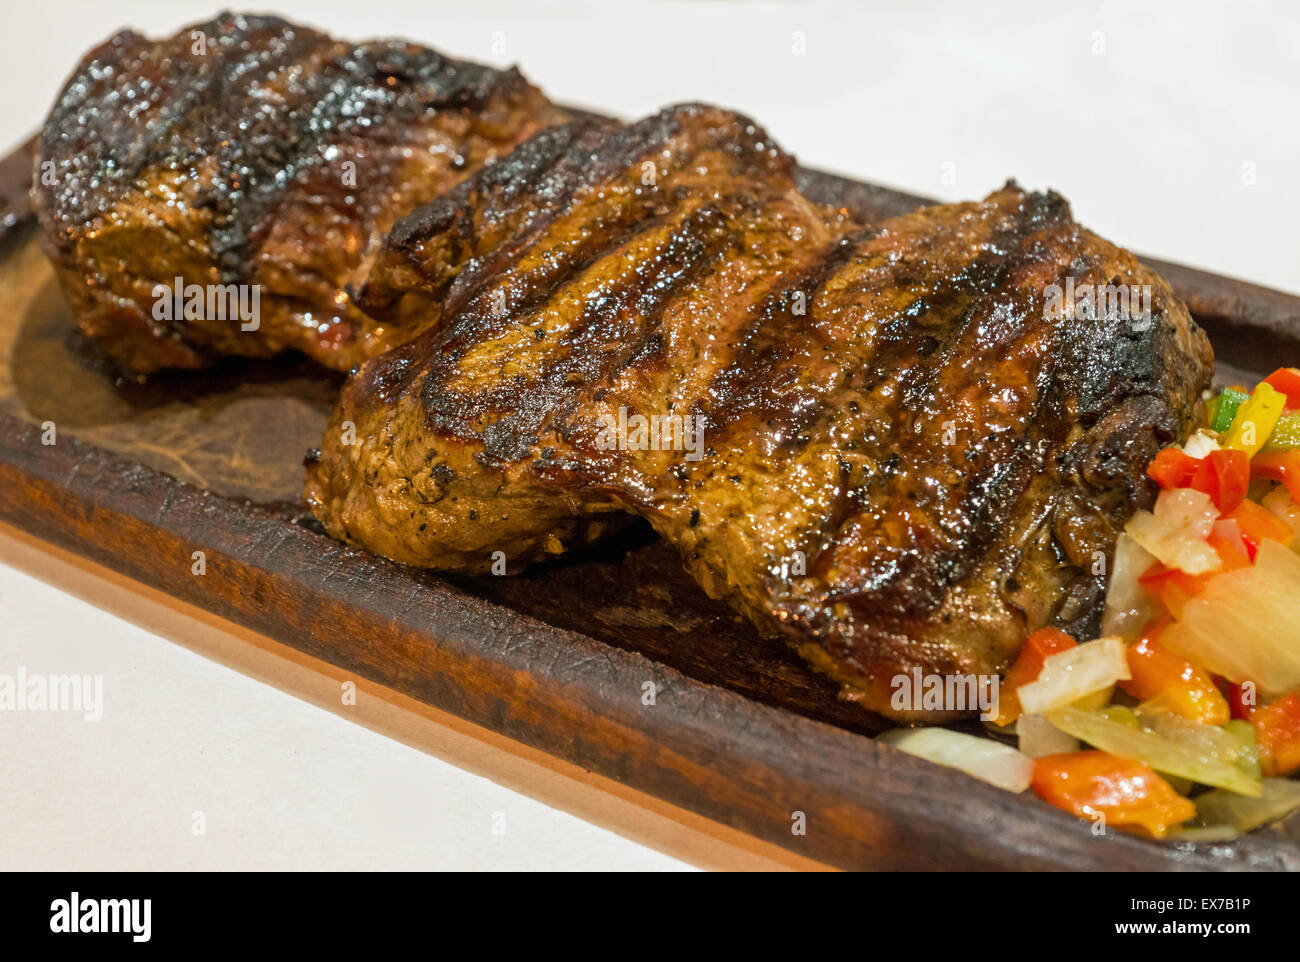 A delicious argentinean steak in a restaurant in Buenos Aires - Stock Image